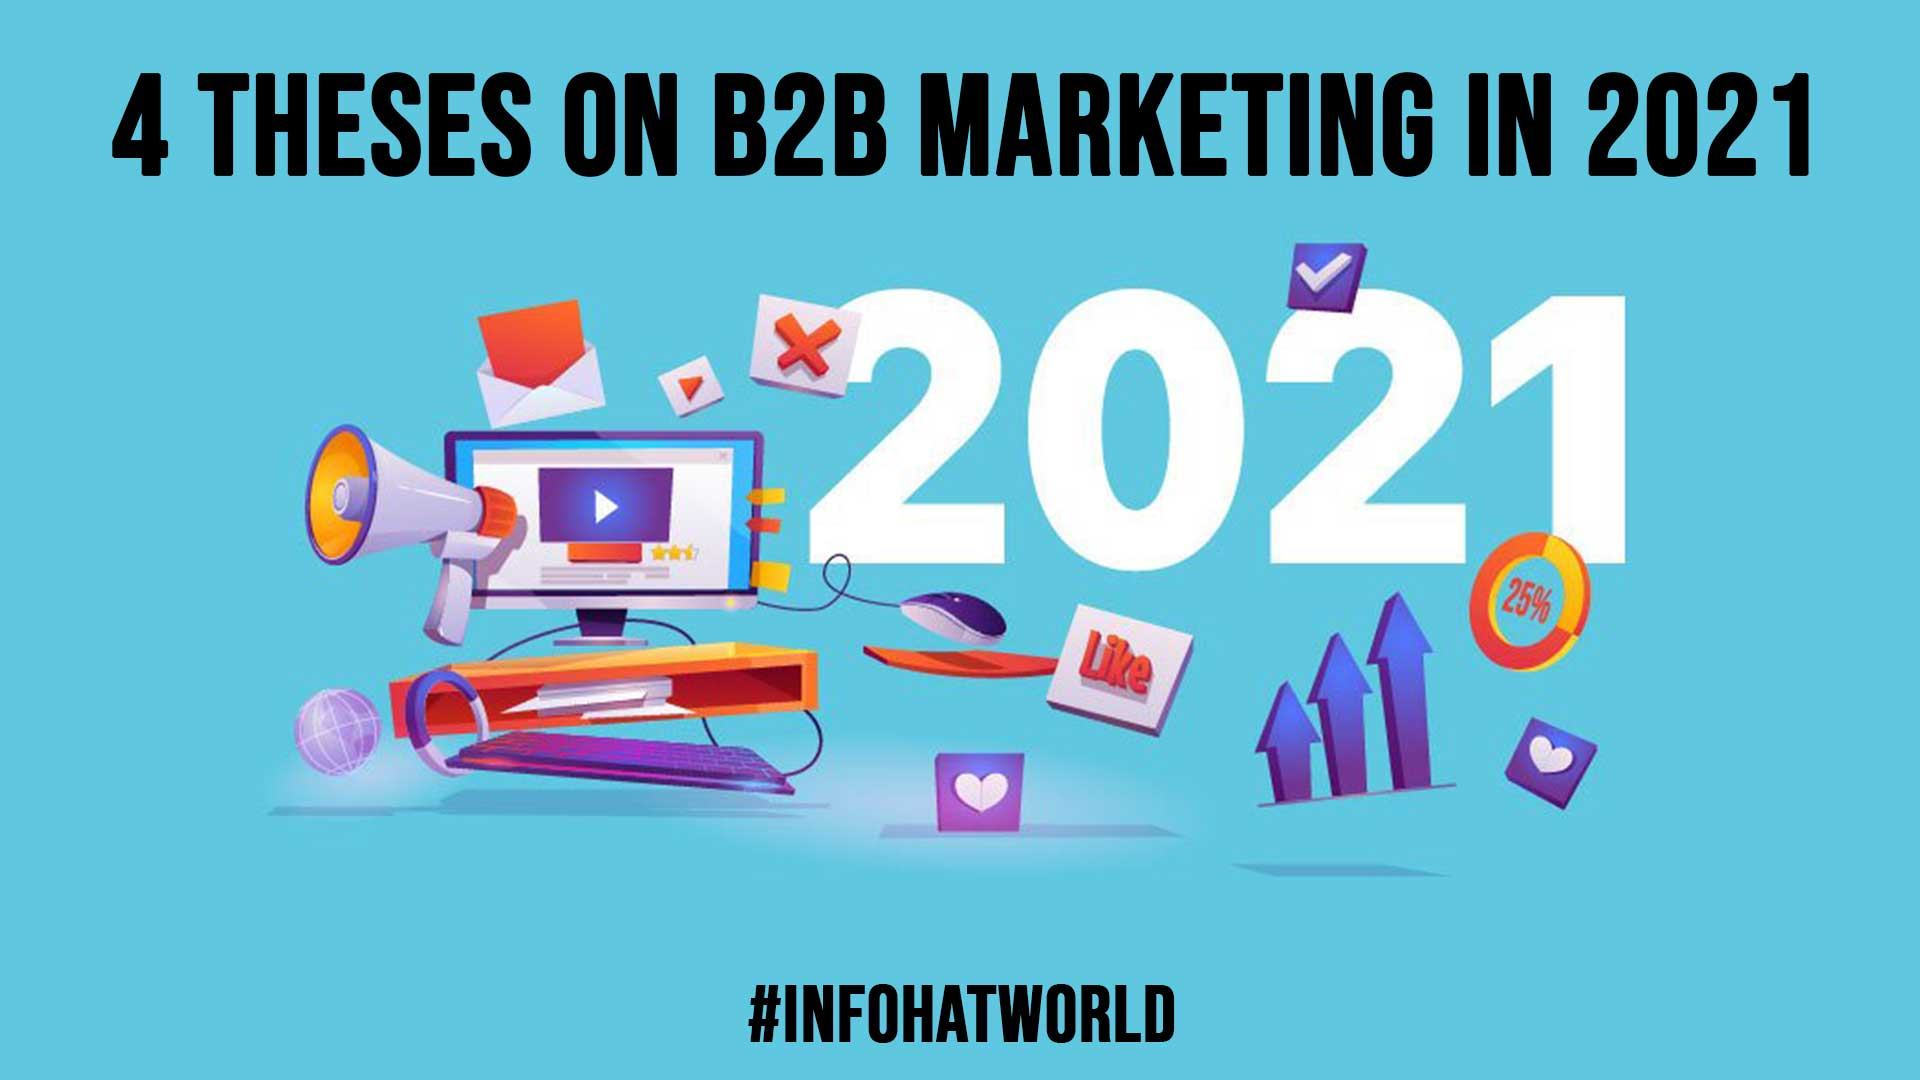 4 Theses on B2B Marketing in 2021